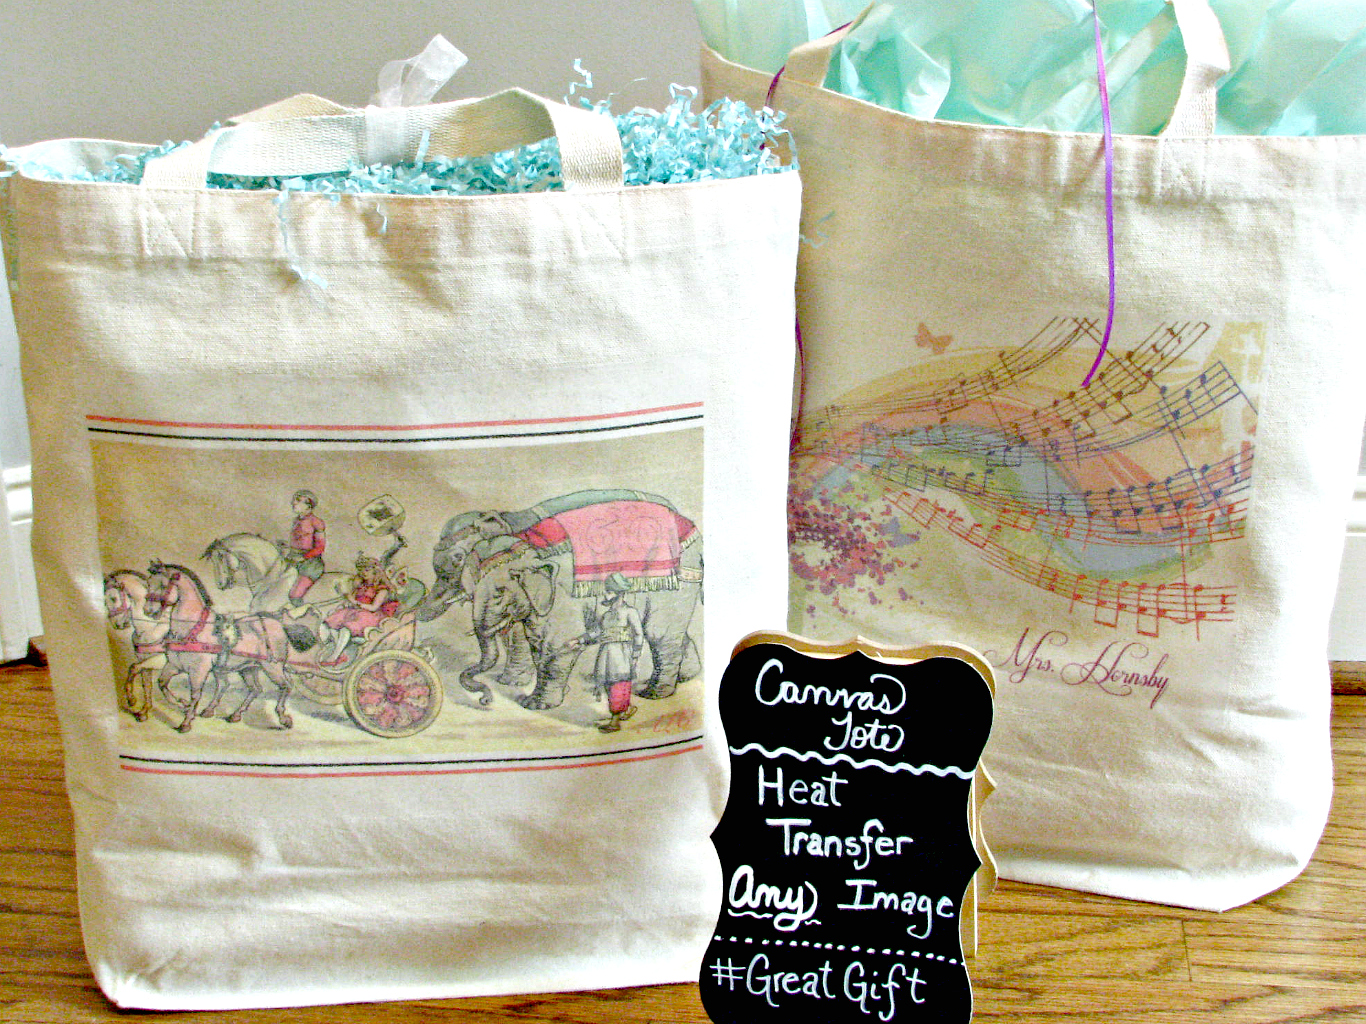 Canvas tote bags with transferred images using iron on transfer paper.